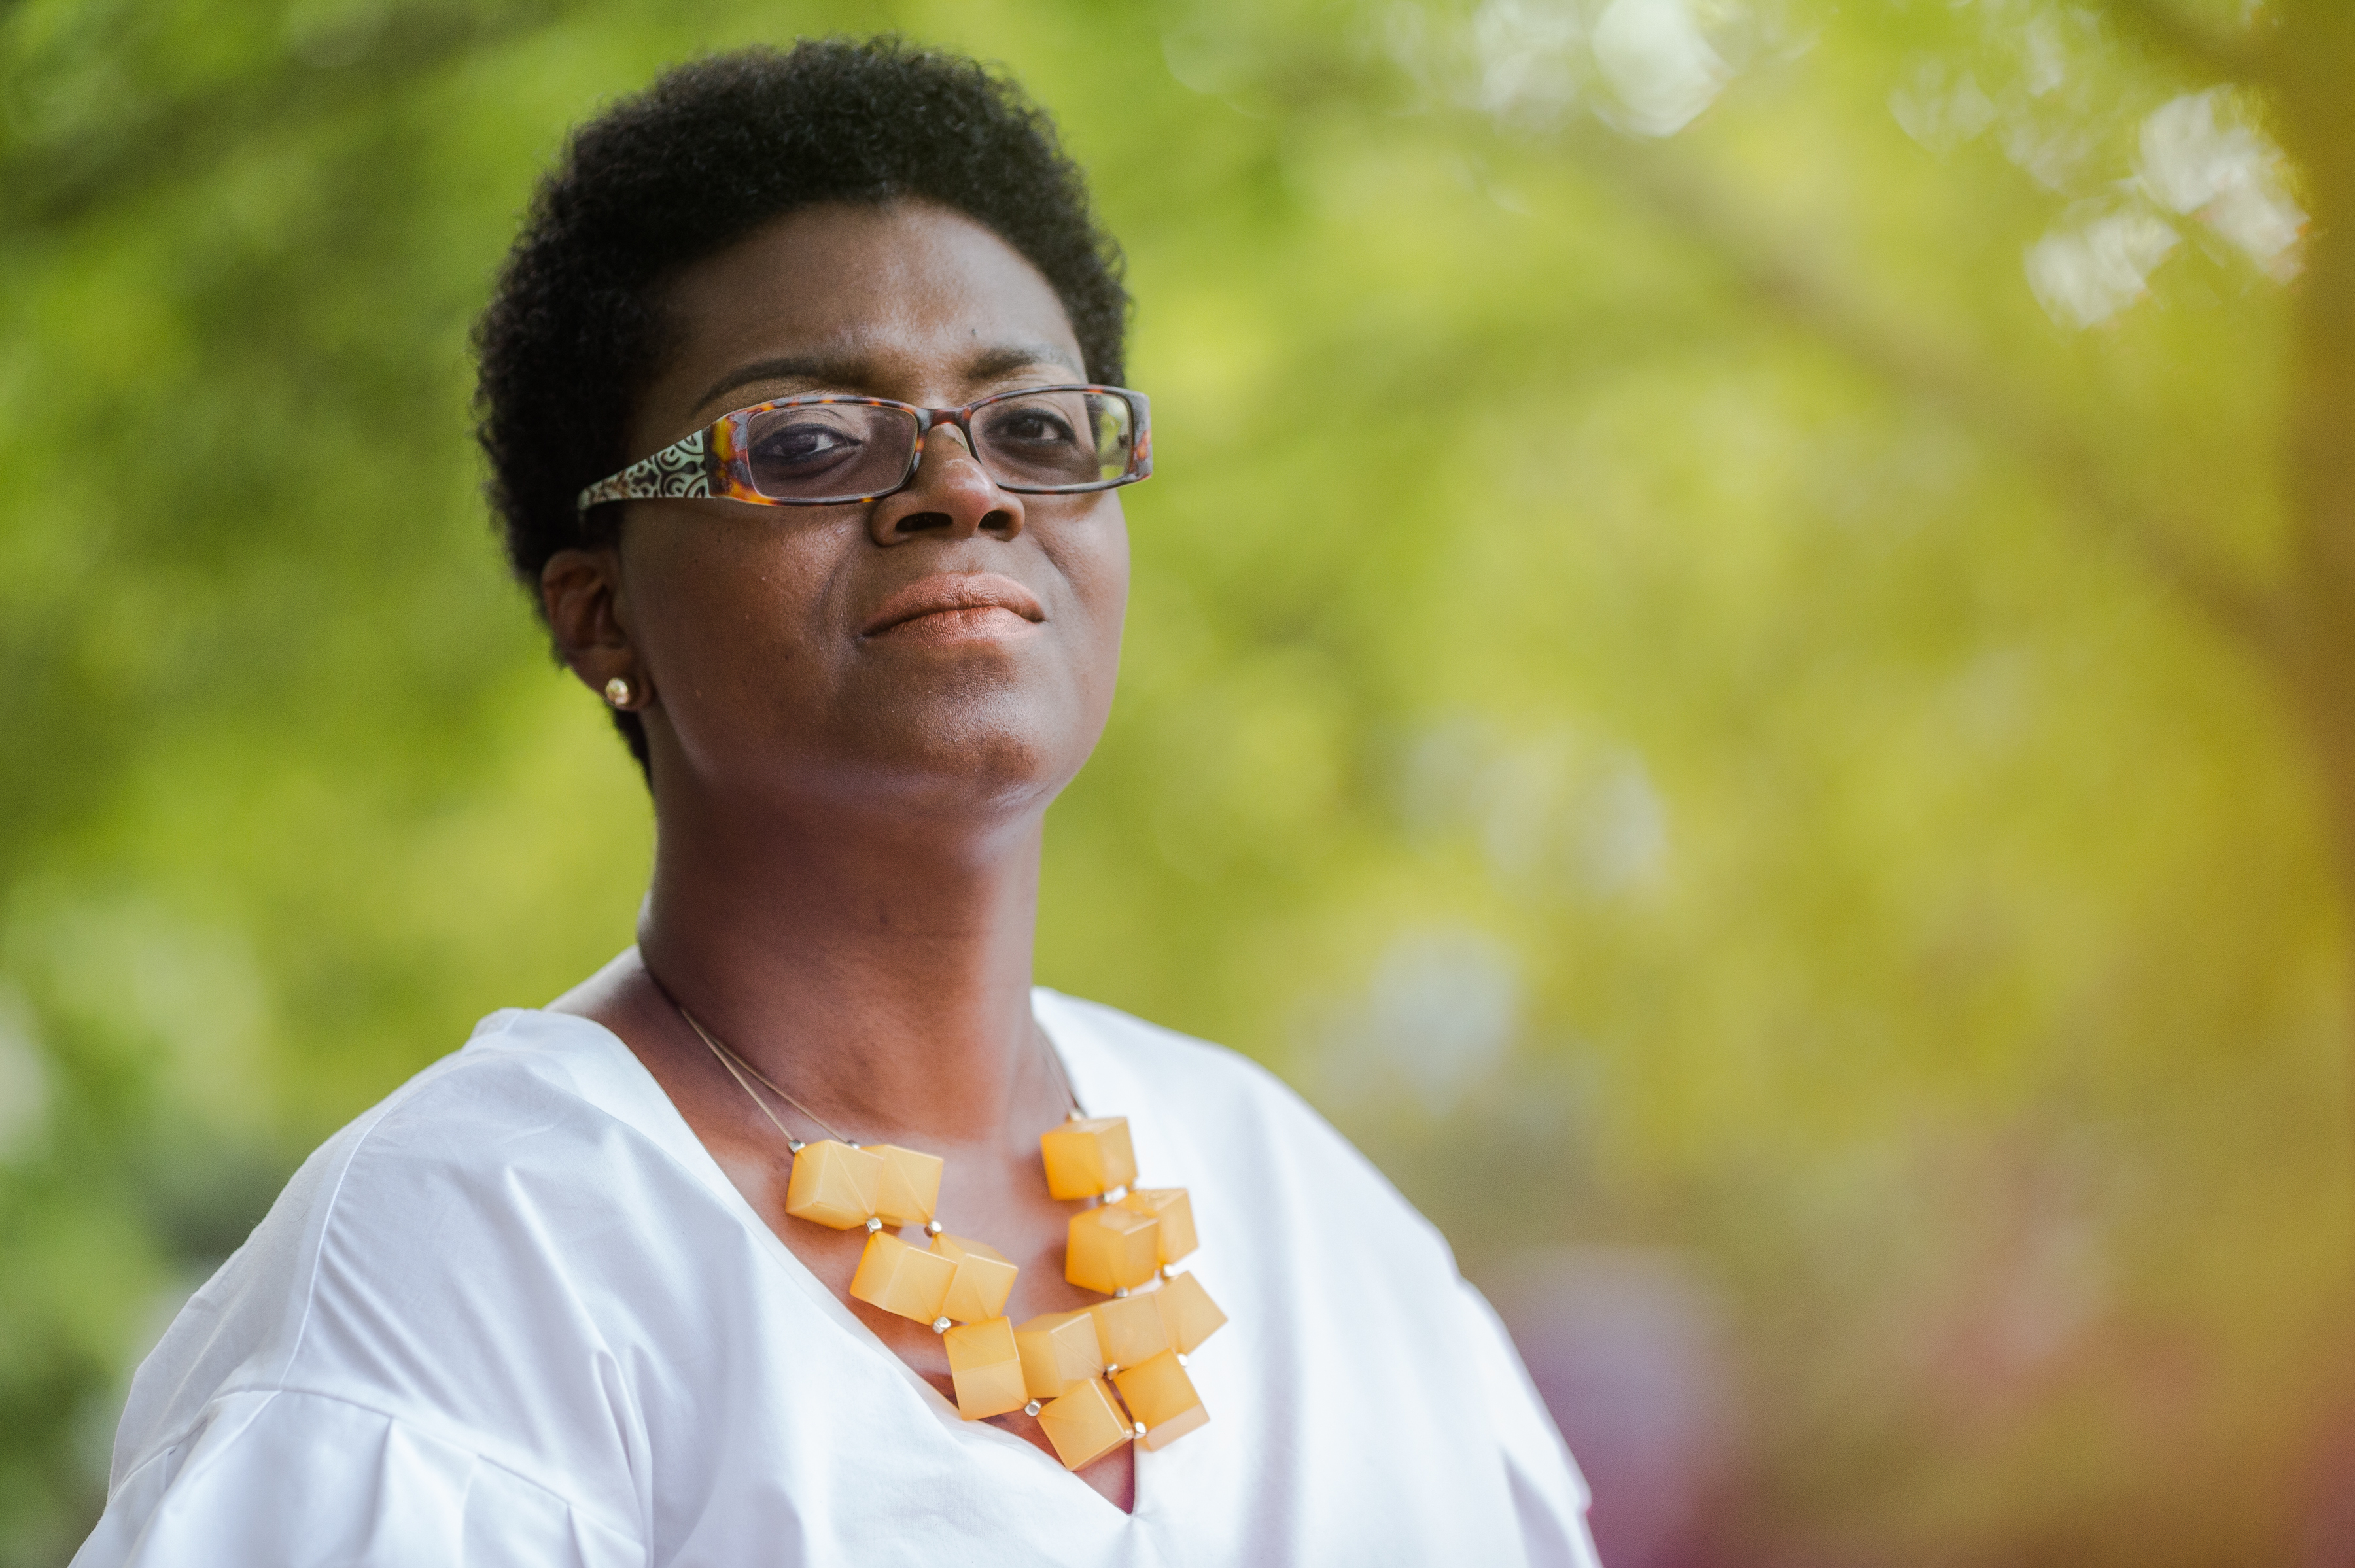 One Reason Breast Cancer Is More Lethal For Black Women Shots Health News Npr